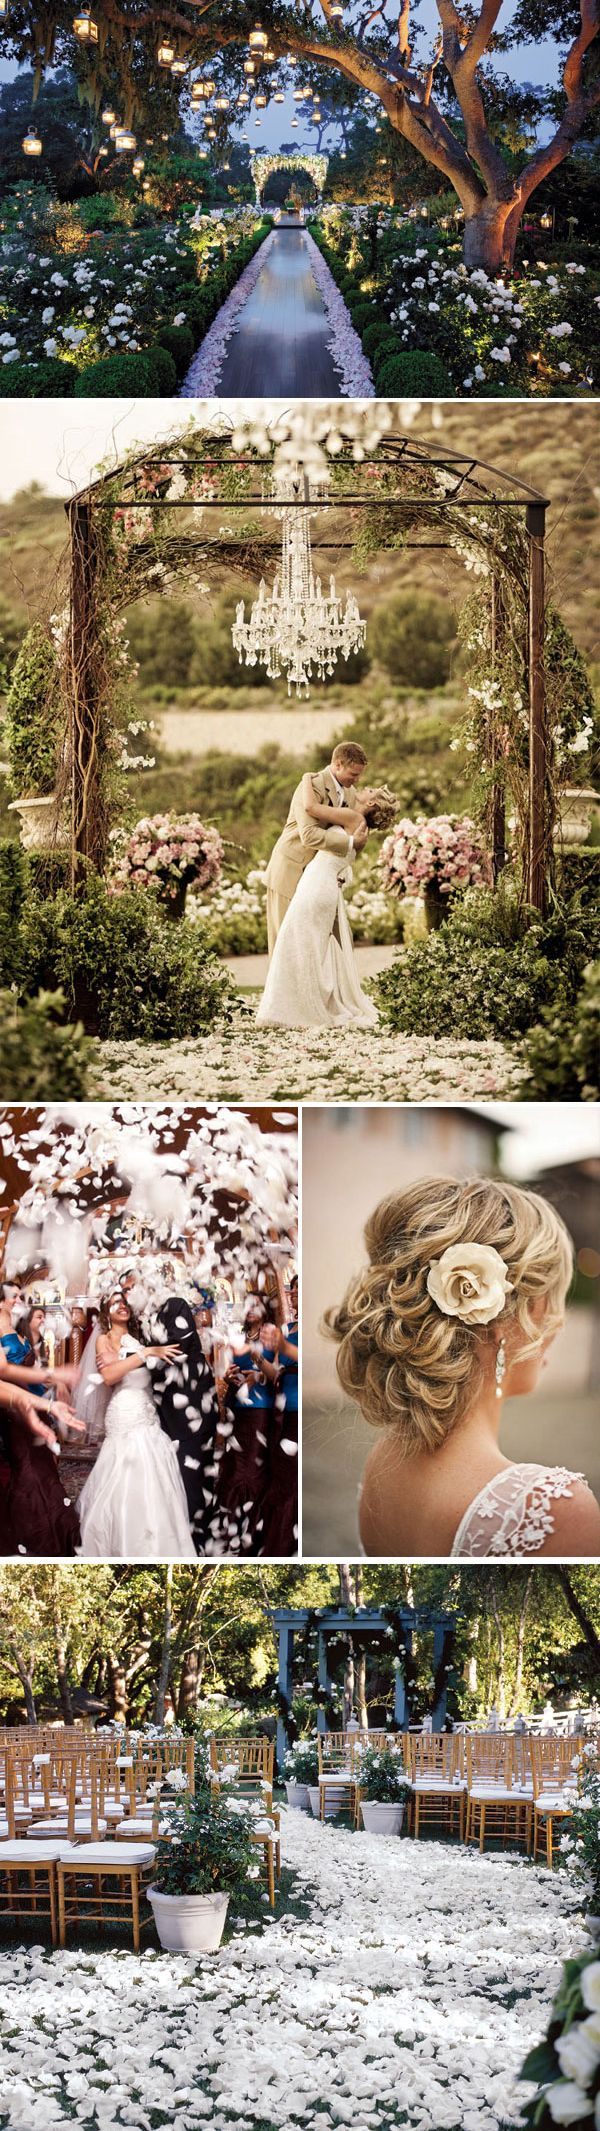 Beautiful way to incorporate florals in an outdoor wedding